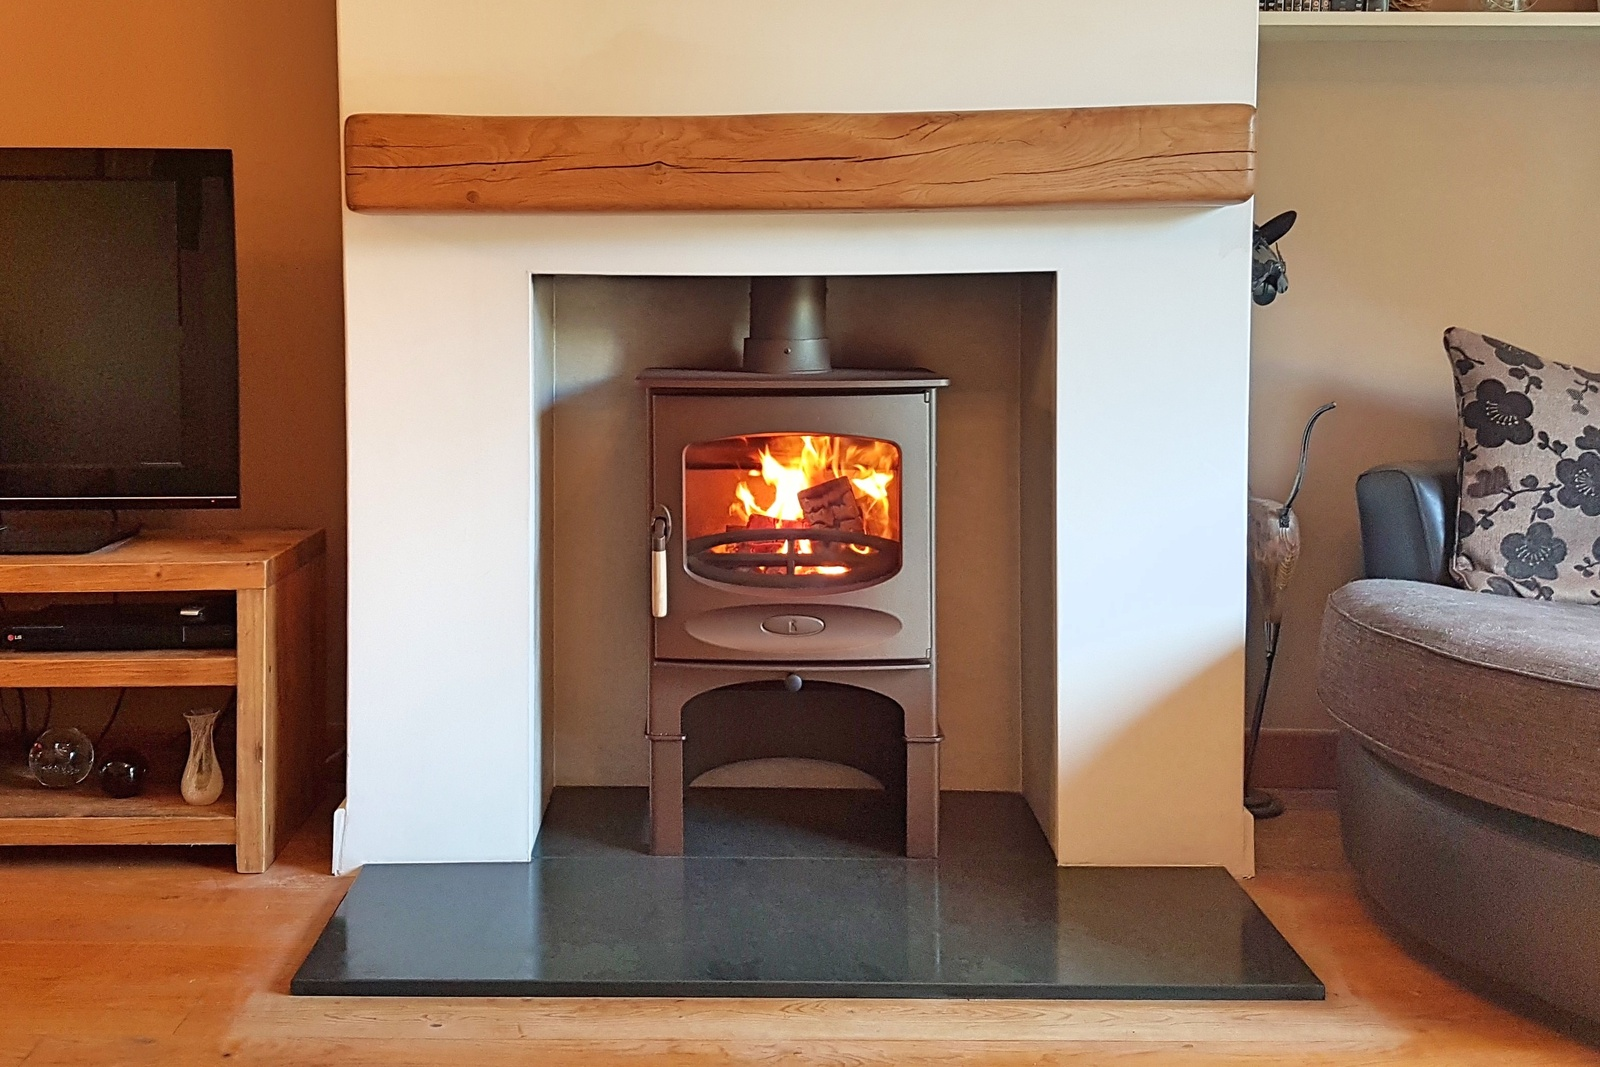 The stove was chosen in a warm bronze colour to sit beautifully with the rustic wooden fireplace beam